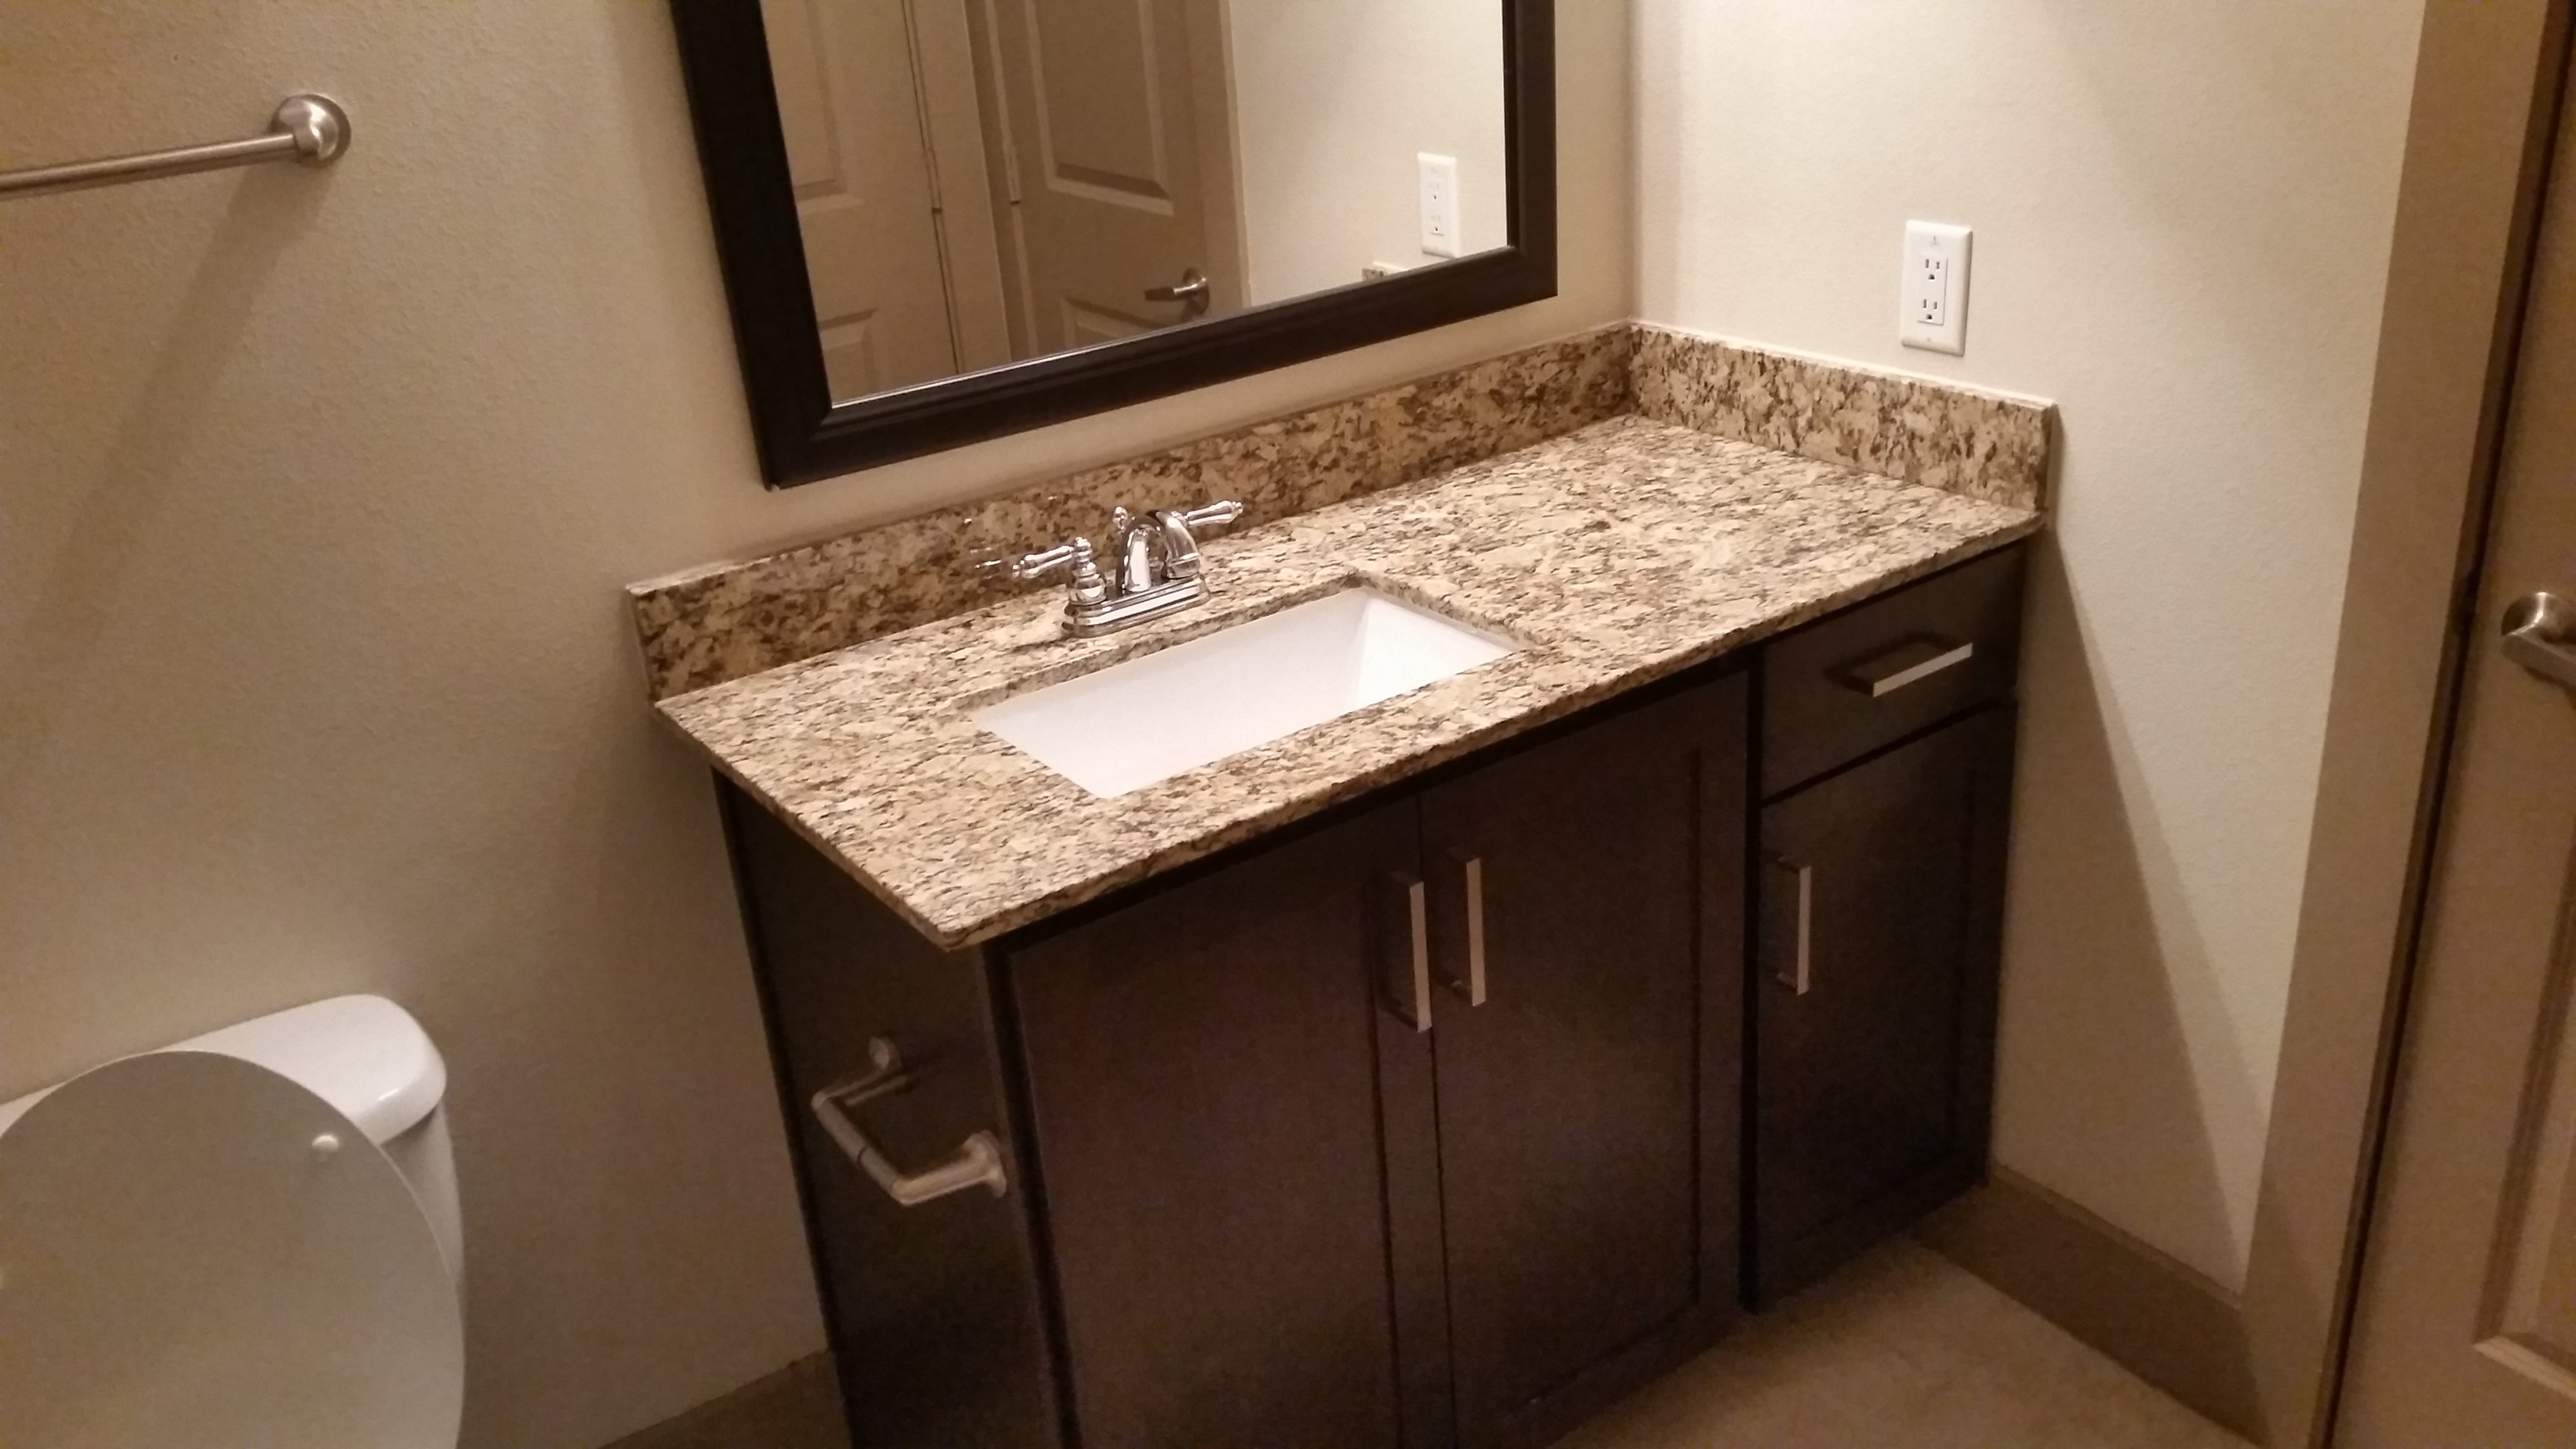 Bathroom Fixtures Grapevine Texas 1 bed 1 bath available near grapevine shopping mall in grapevine